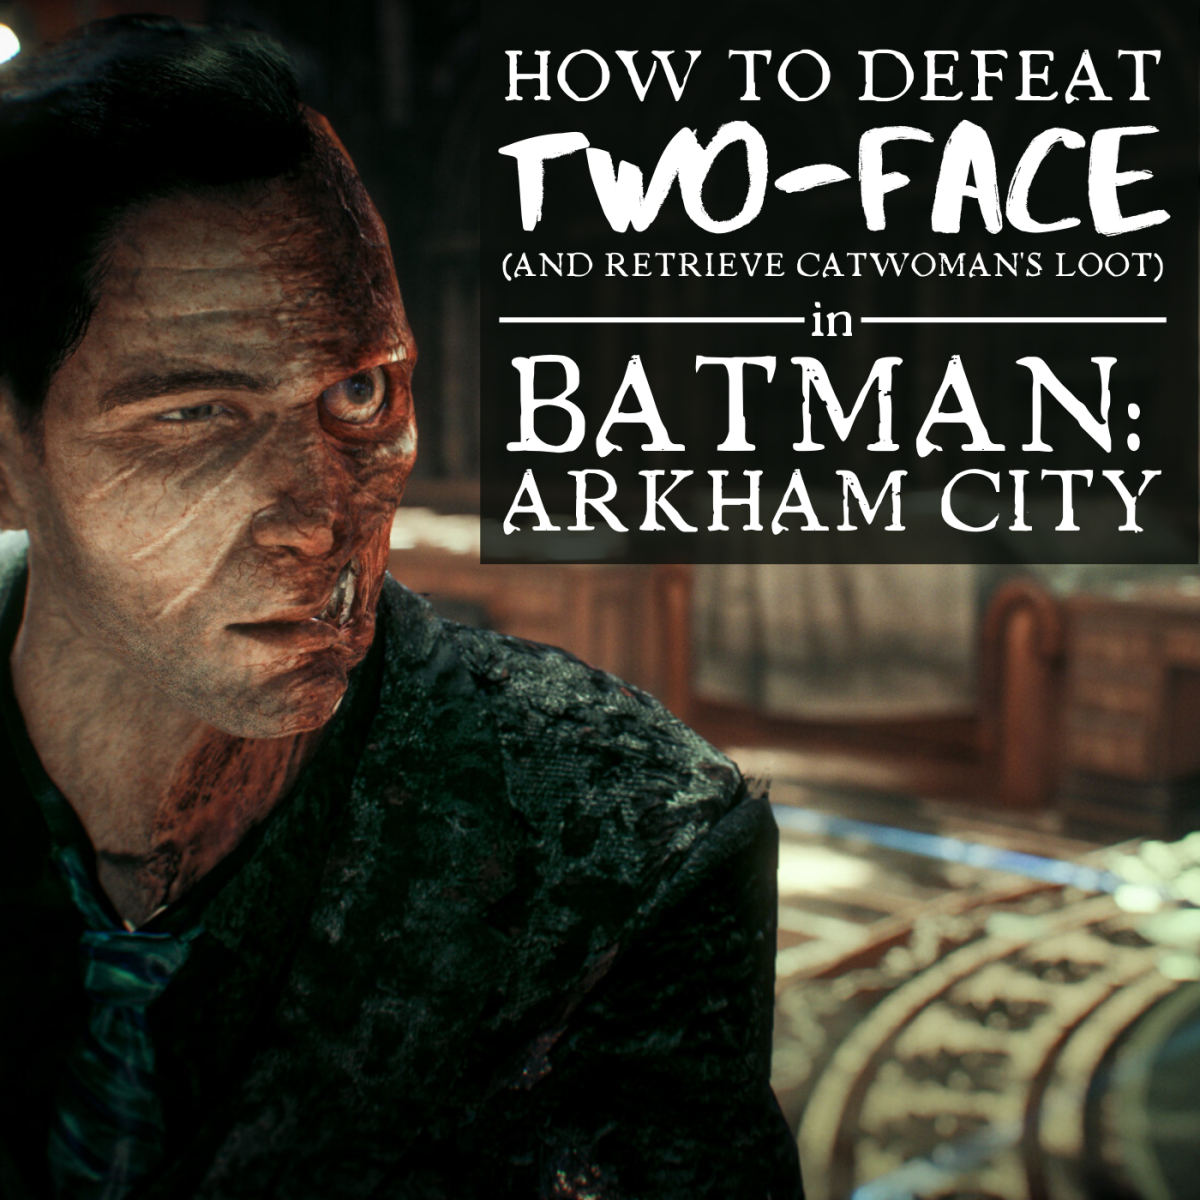 How to Defeat Two-Face at the Museum in